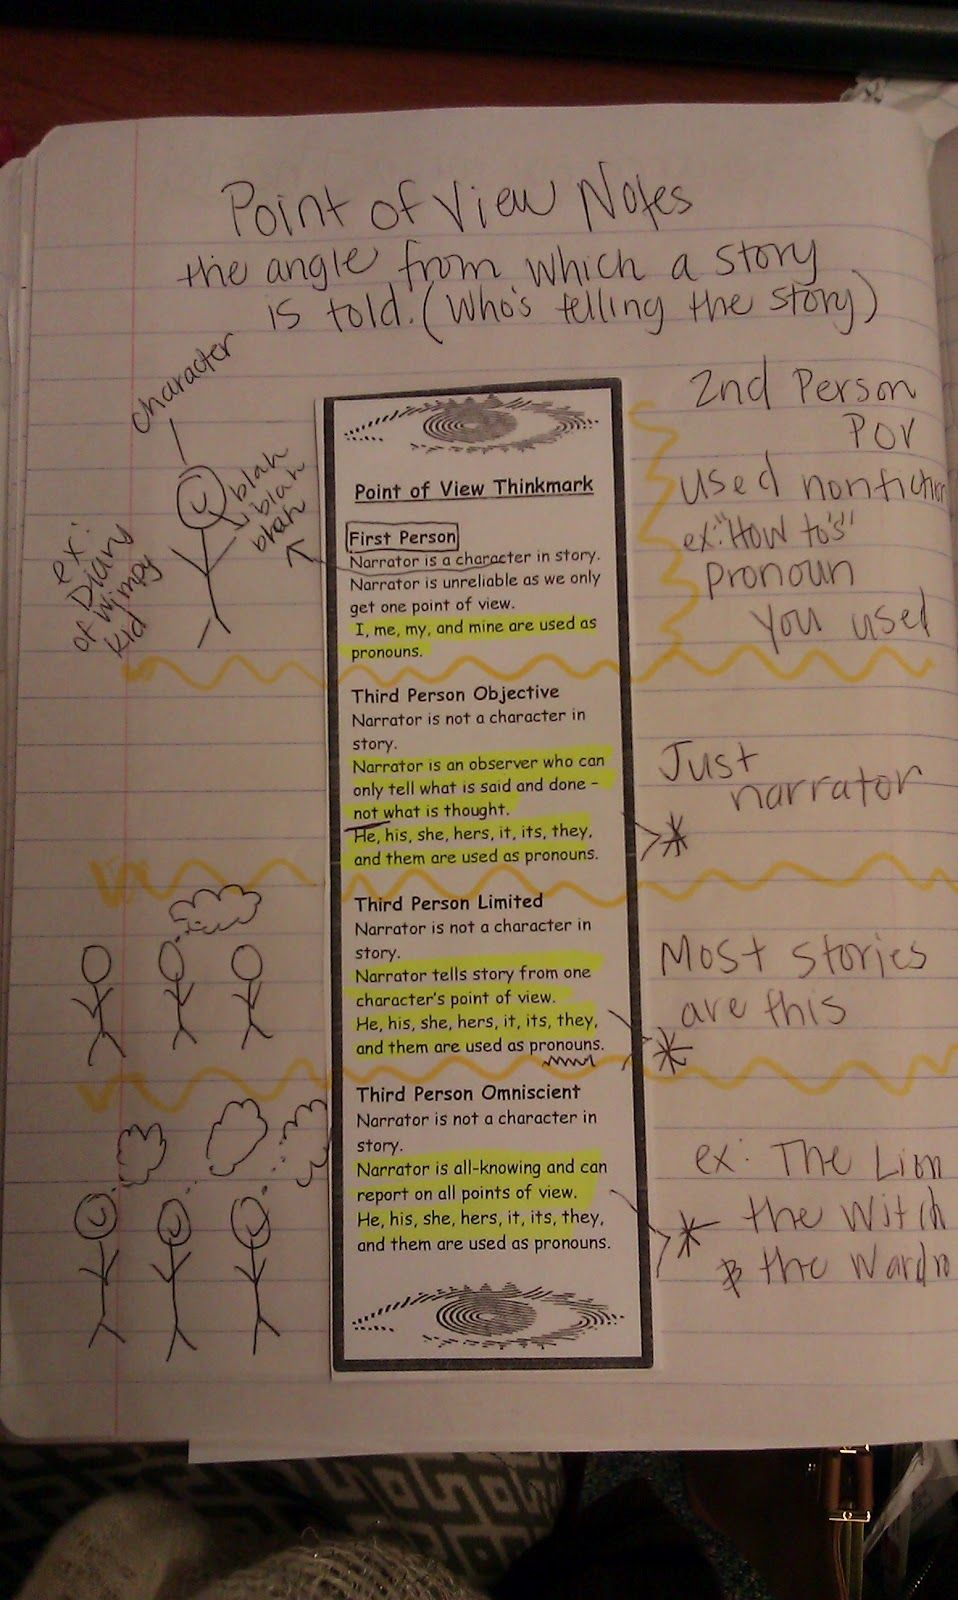 Literary Essay Writing Point Of View In Stories  Notes And Anchor Chart I Like The Visuals For  Rd Person Limitedomniscient I Mostly Just Like This Style Of Note  War On Terror Essay also Examples Of Narrative Essays Point Of View In Stories  Notes And Anchor Chart I Like The  Evaluative Essay Examples